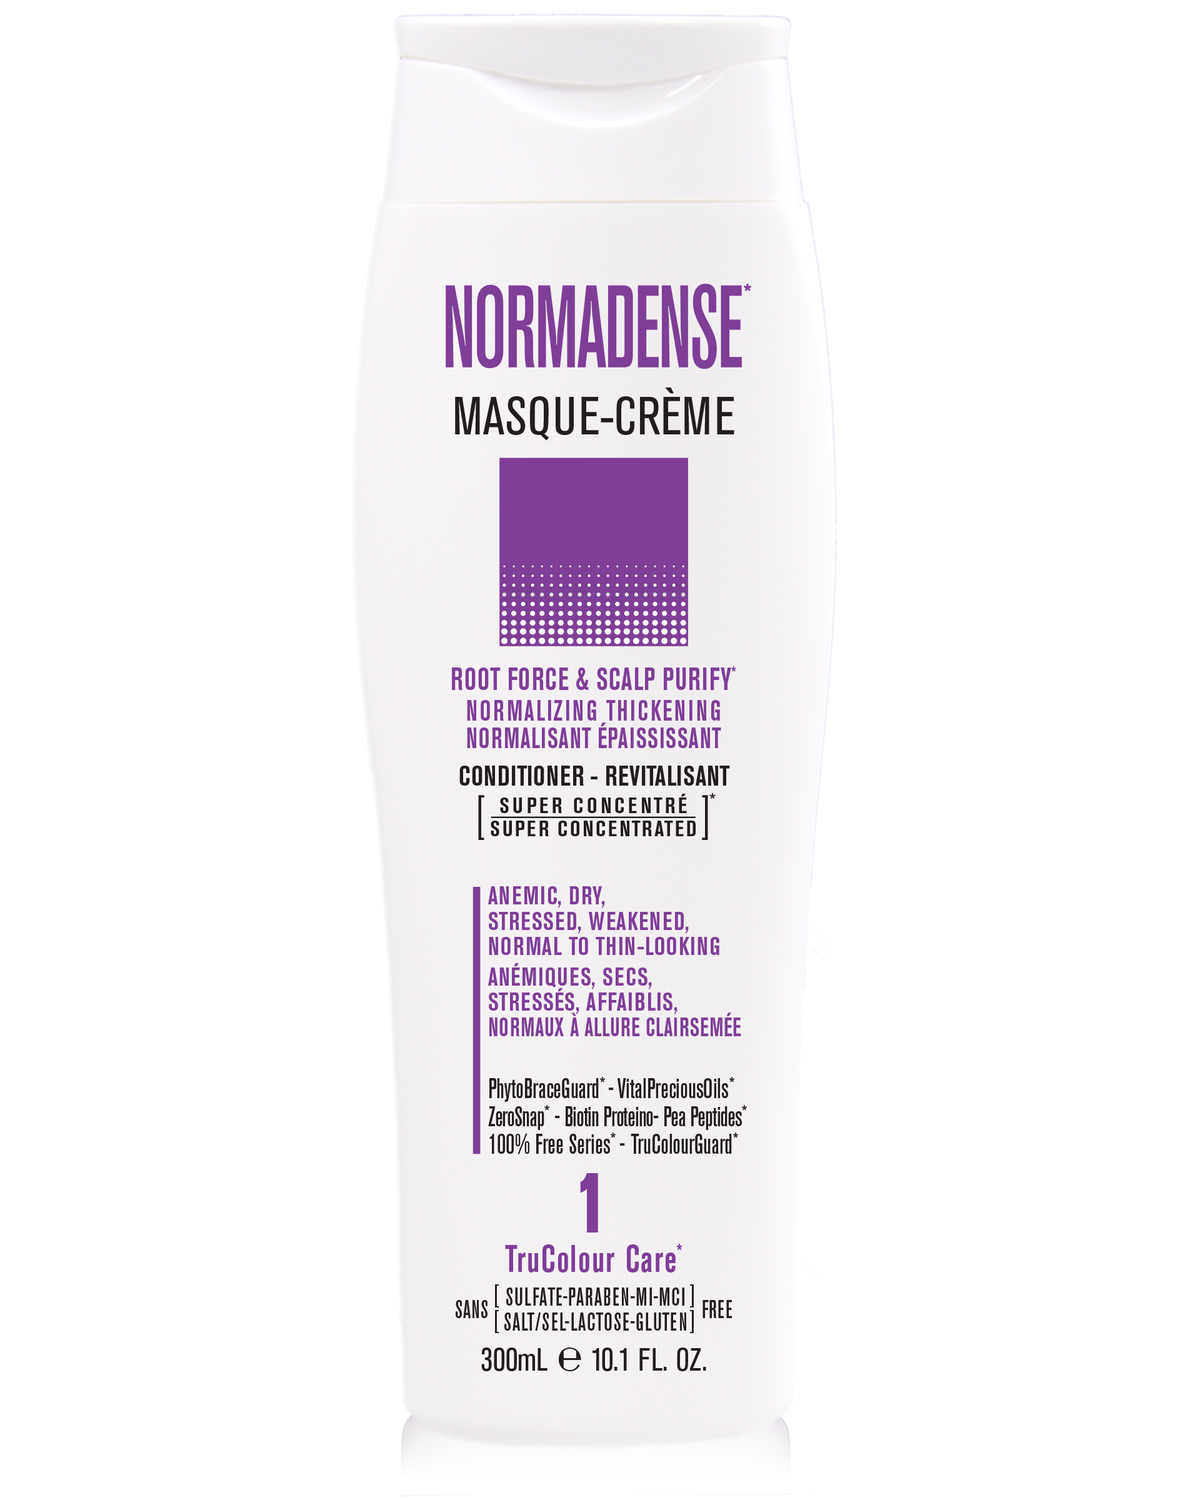 NORMADENSE 1 Scalp Purify Normalizing Thickening Masque-Creme (conditioner) - SNOBGIRLS Canada